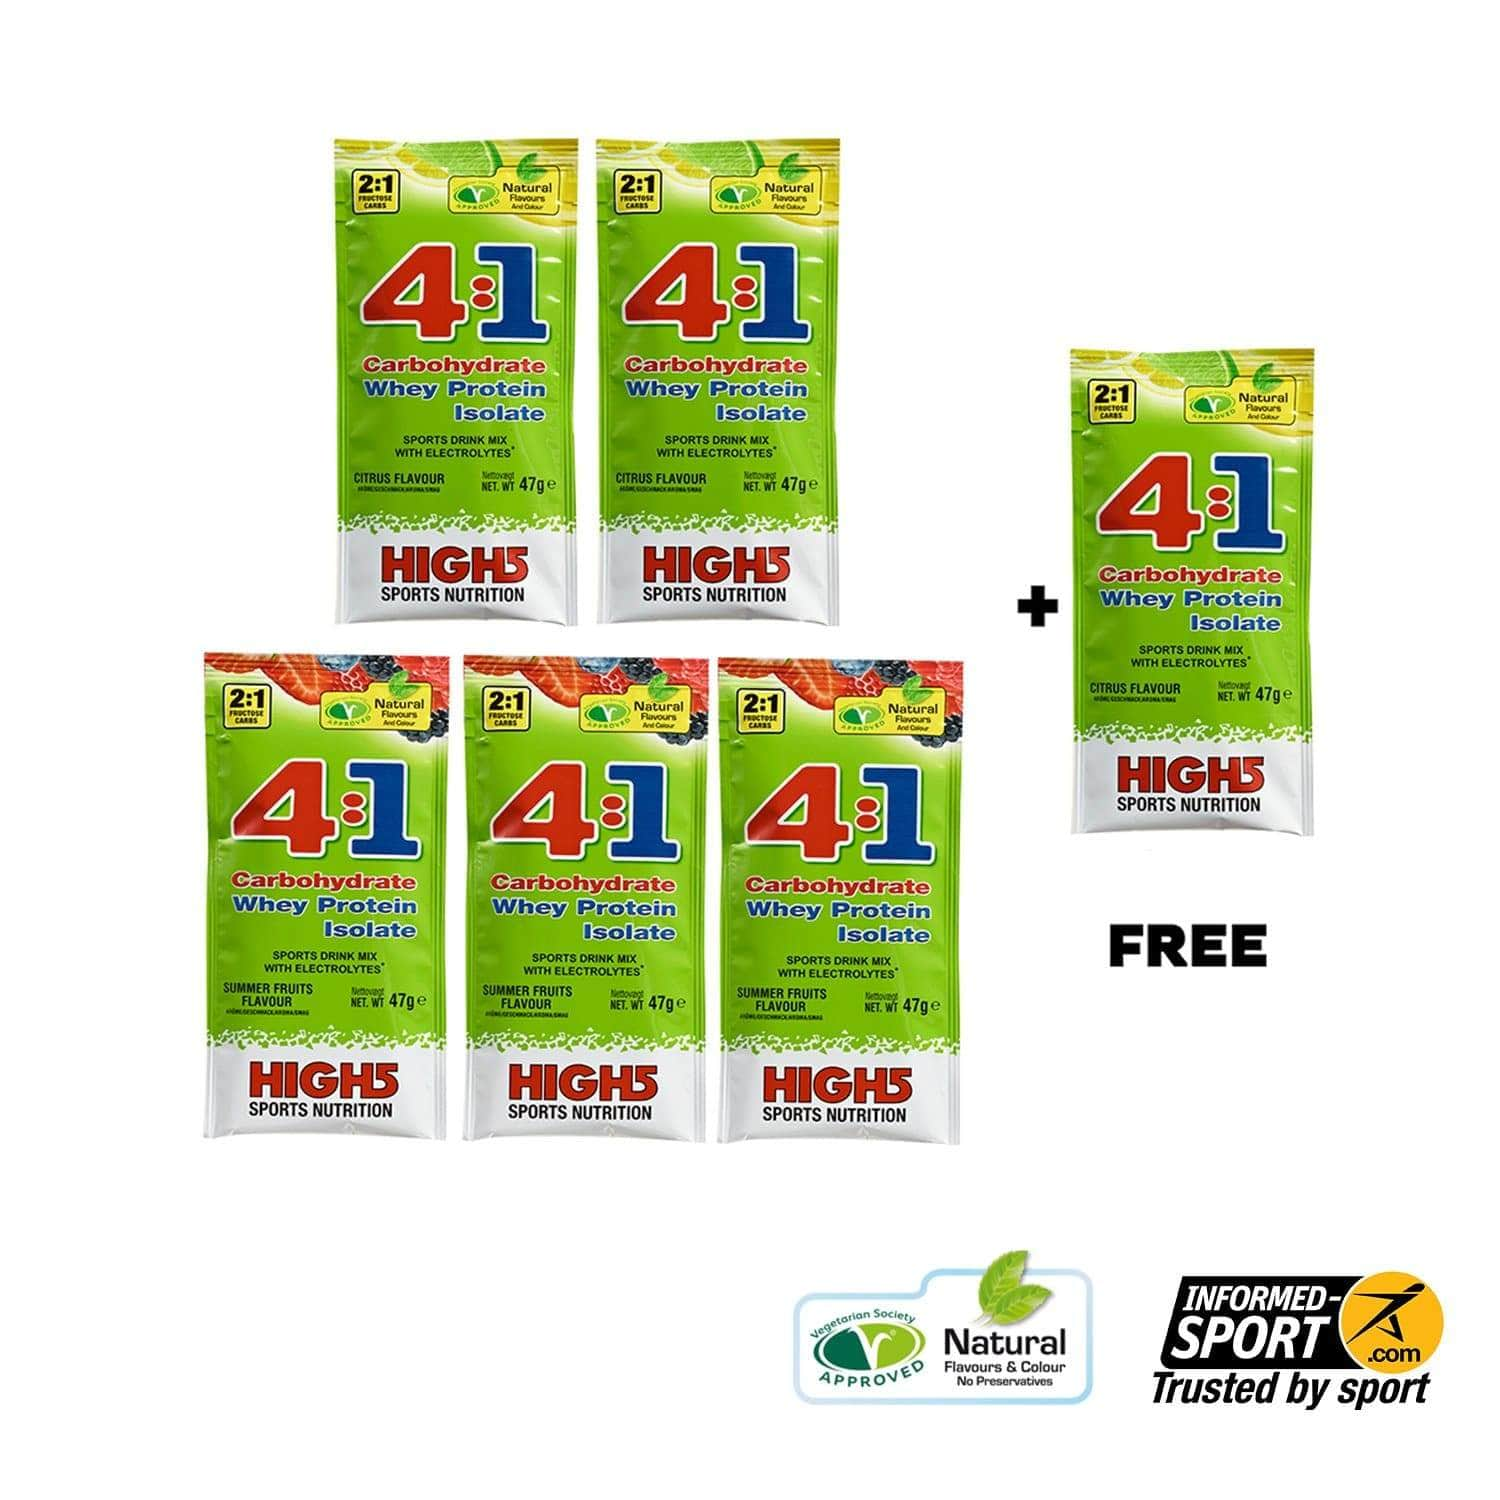 HIGH5 EnergySource 4:1 47g (Buy 5 + Get 1 FREE)